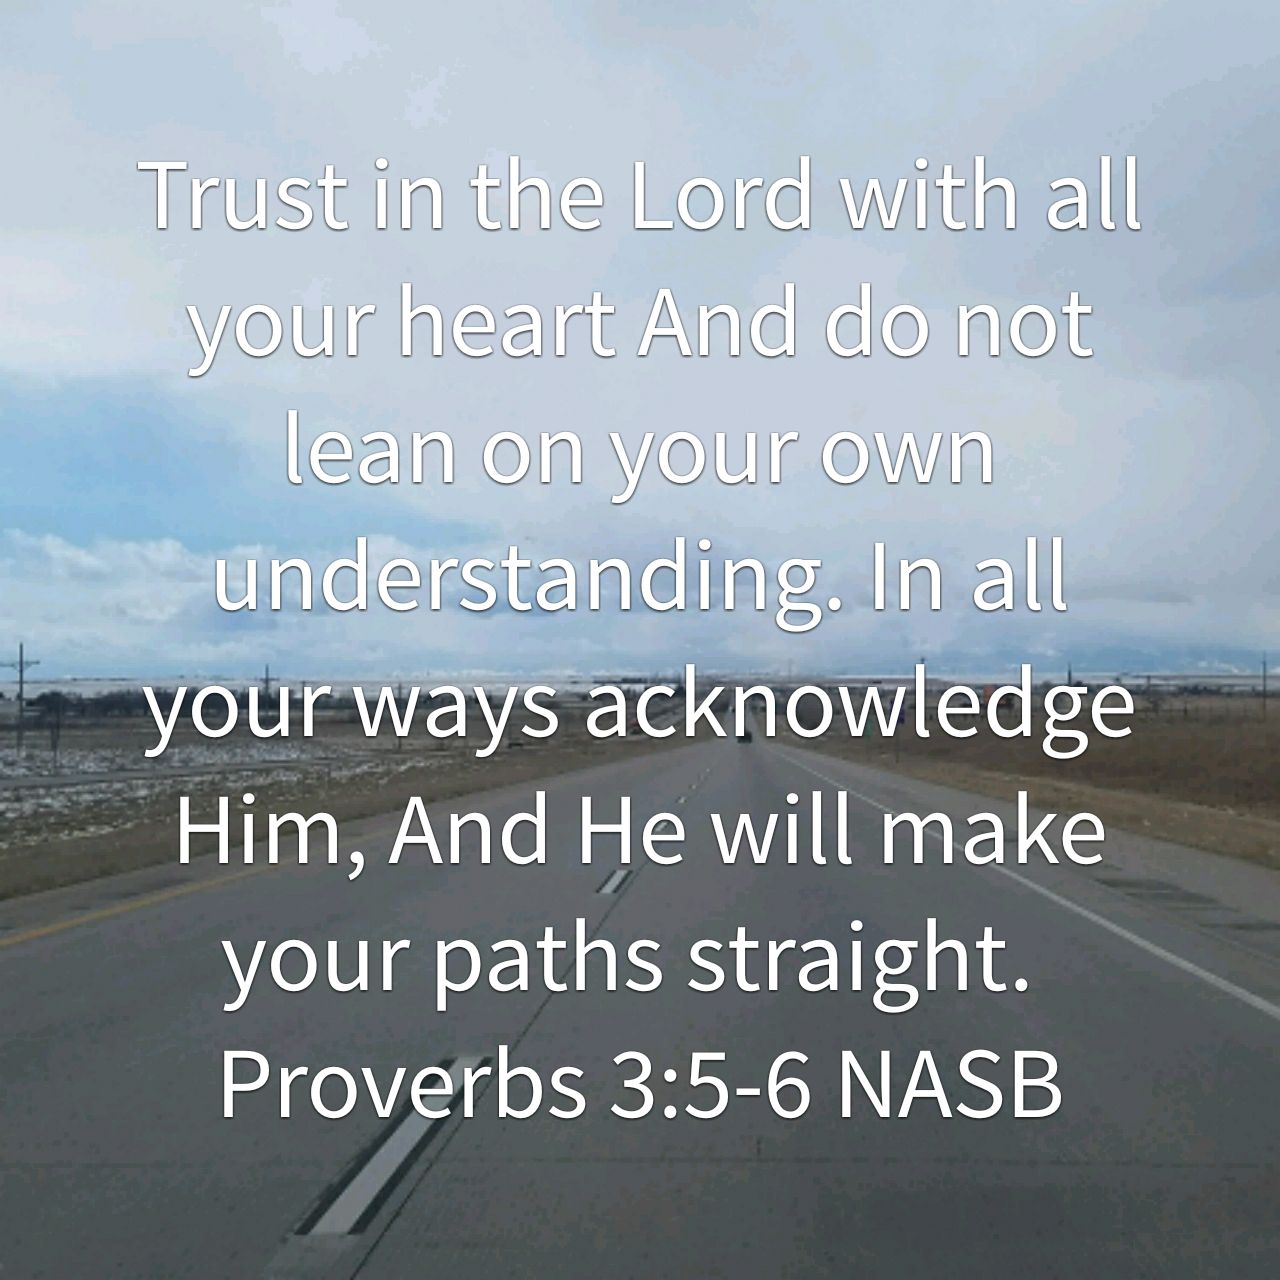 Trust in the Lord with all your heart And do not lean on your own